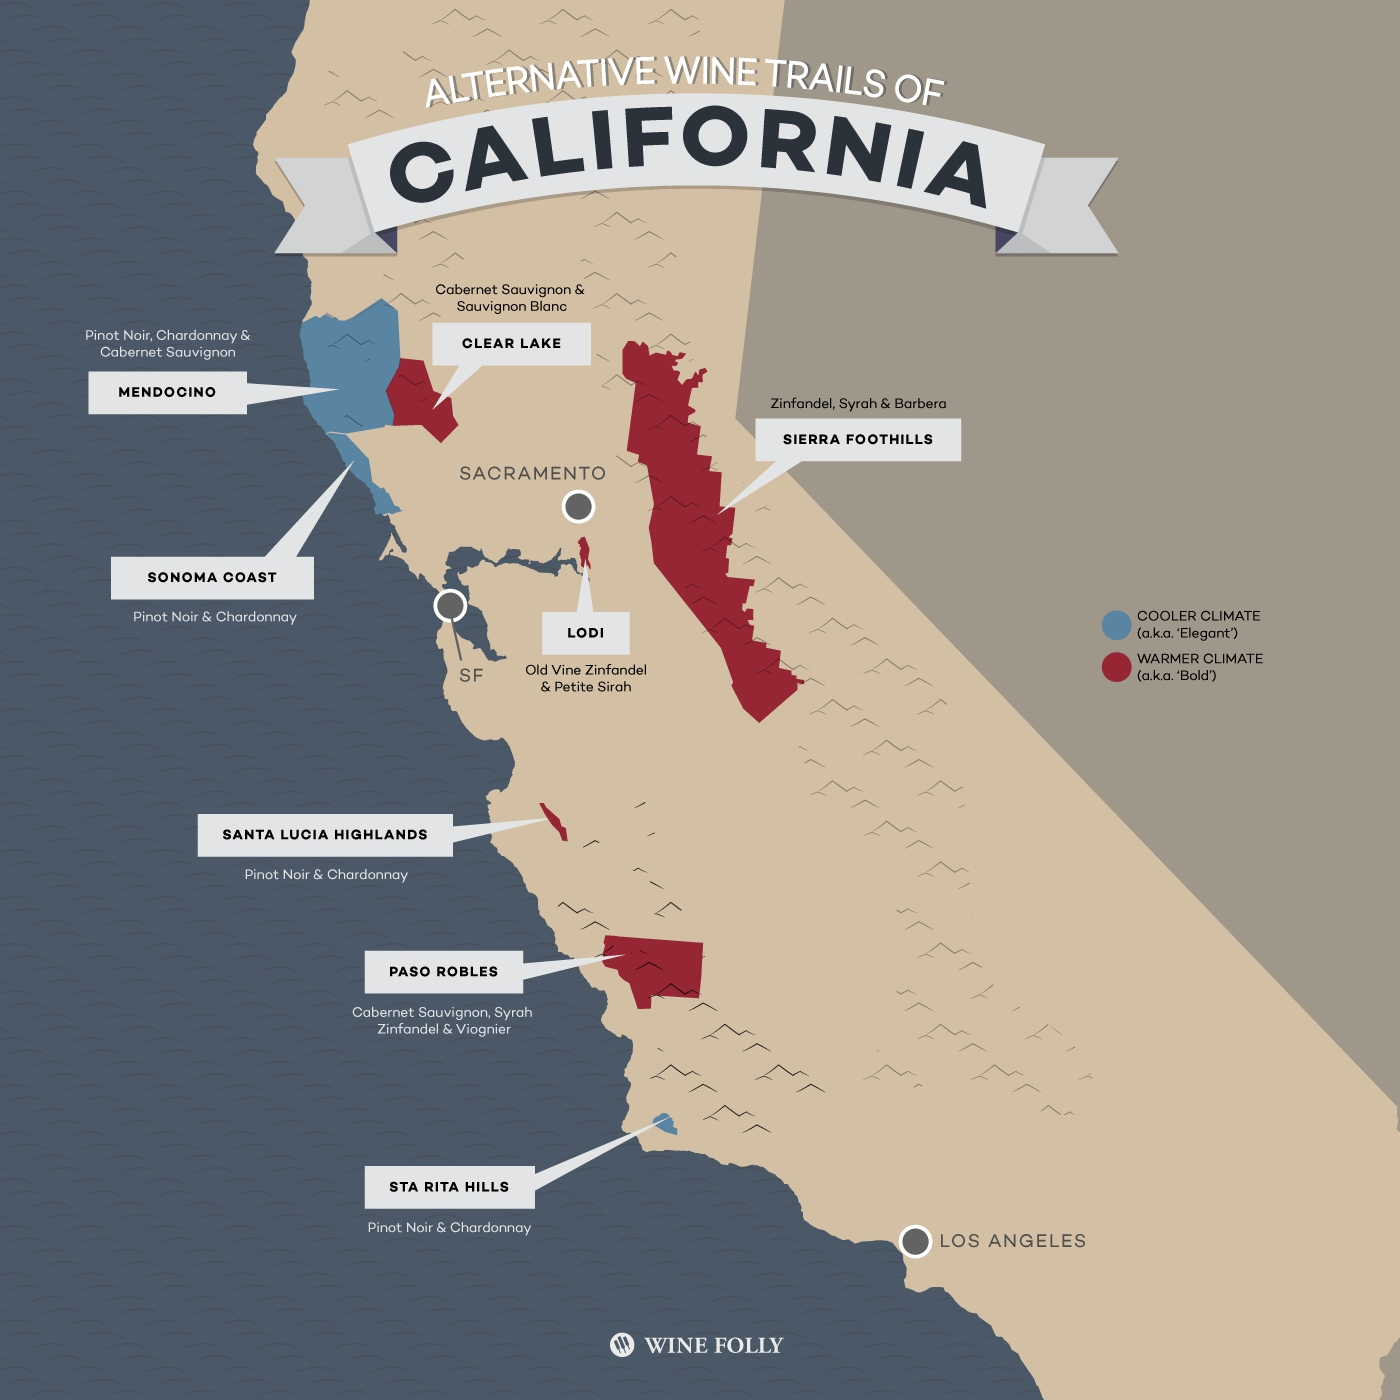 Wine Folly's 8 Alternative Wine Trails Of California - Lodi California Map